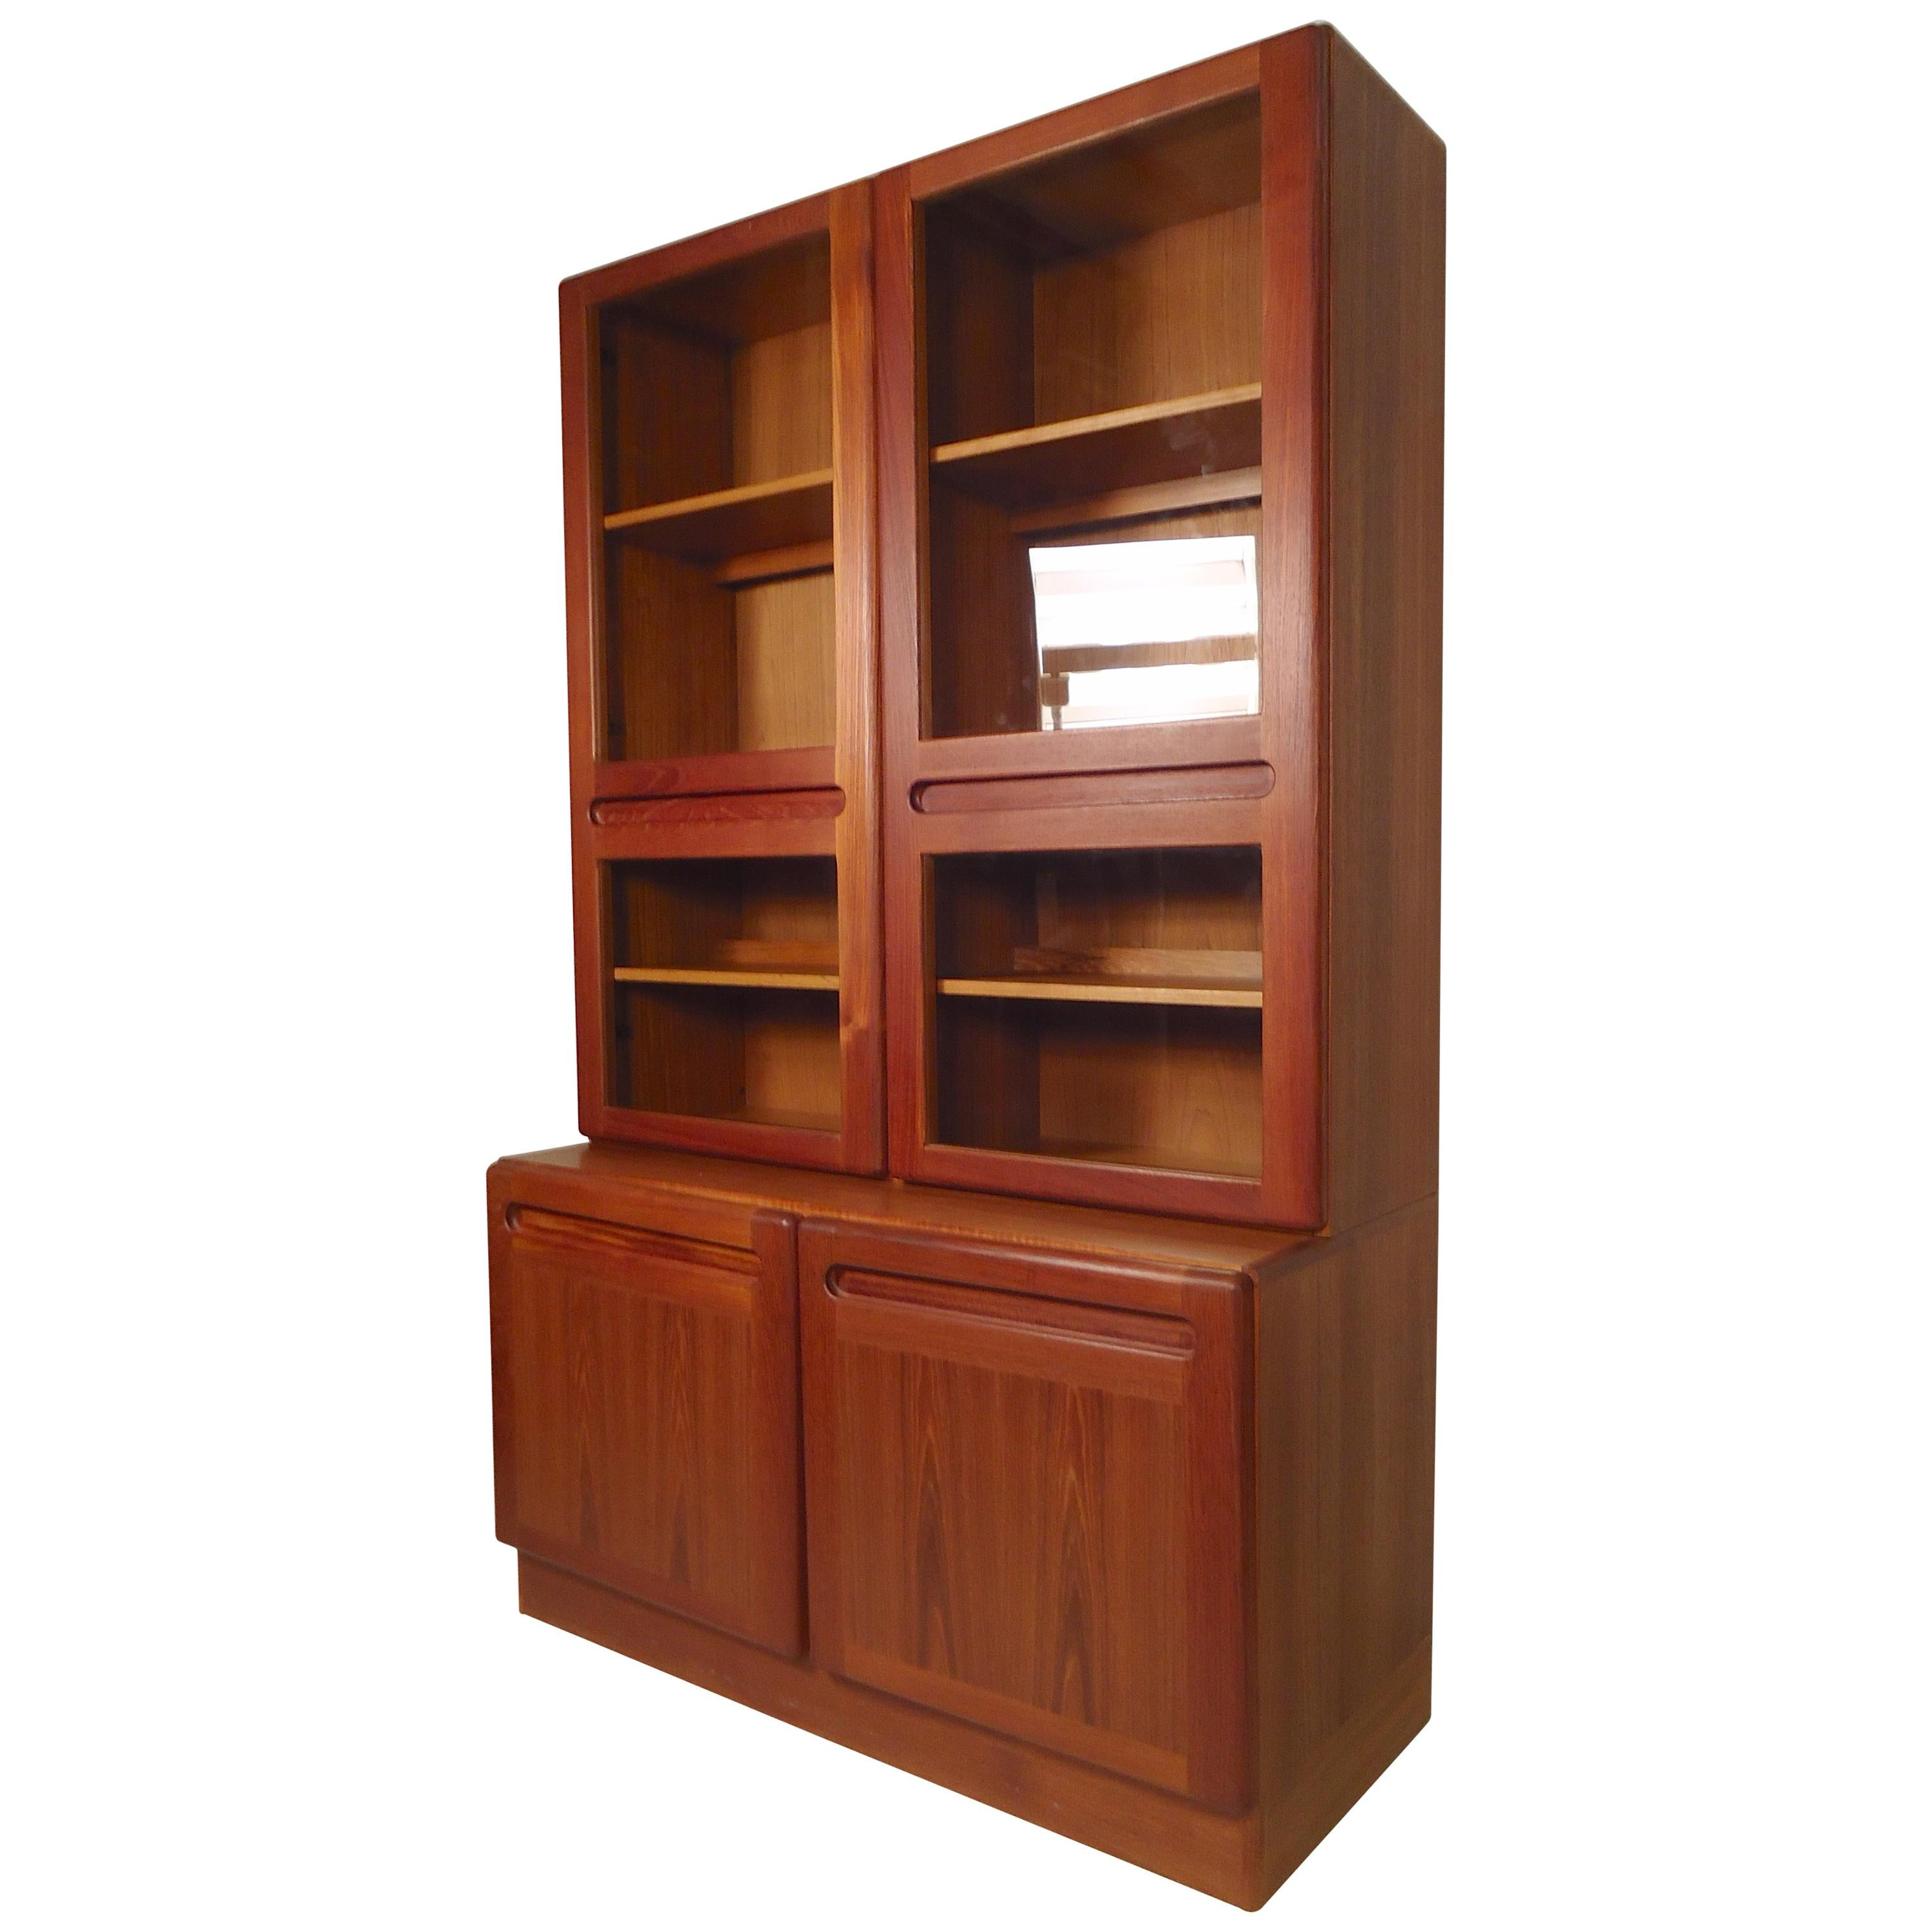 9b31b2cb566ae Mid-Century Modern Bookcases - 736 For Sale at 1stdibs